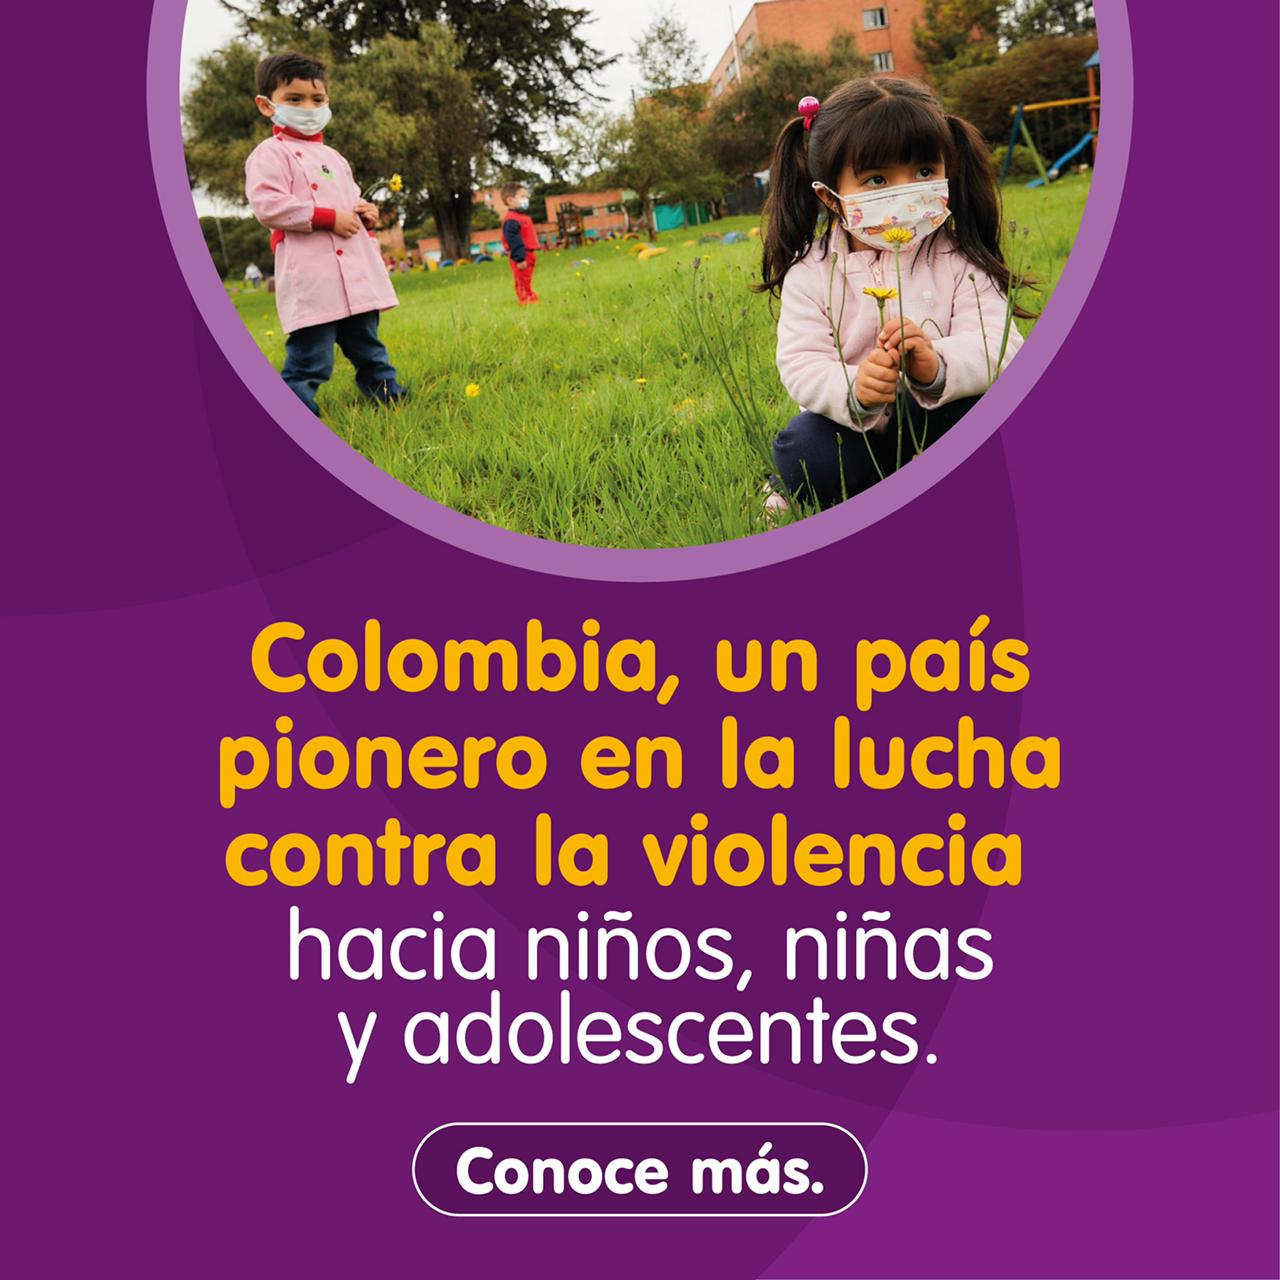 BUILDING A CULTURE OF PROTECTION: COLOMBIA'S IMPACT IN 2020